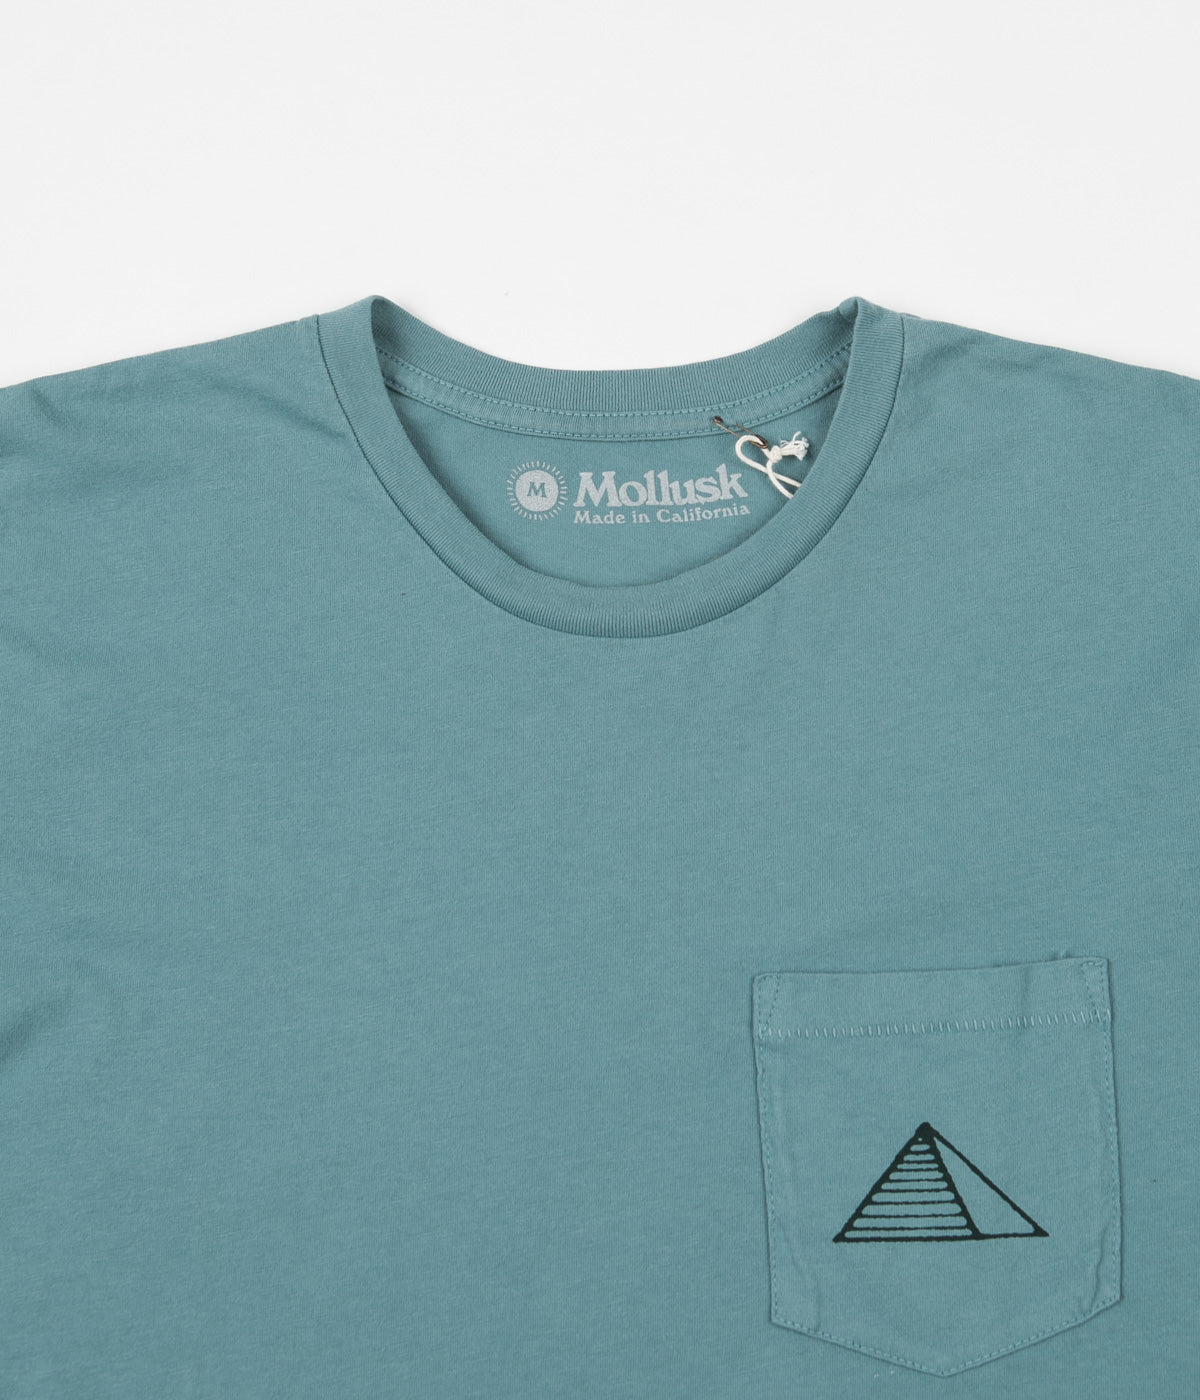 Mollusk Nil T-Shirt - Washed Sapphire